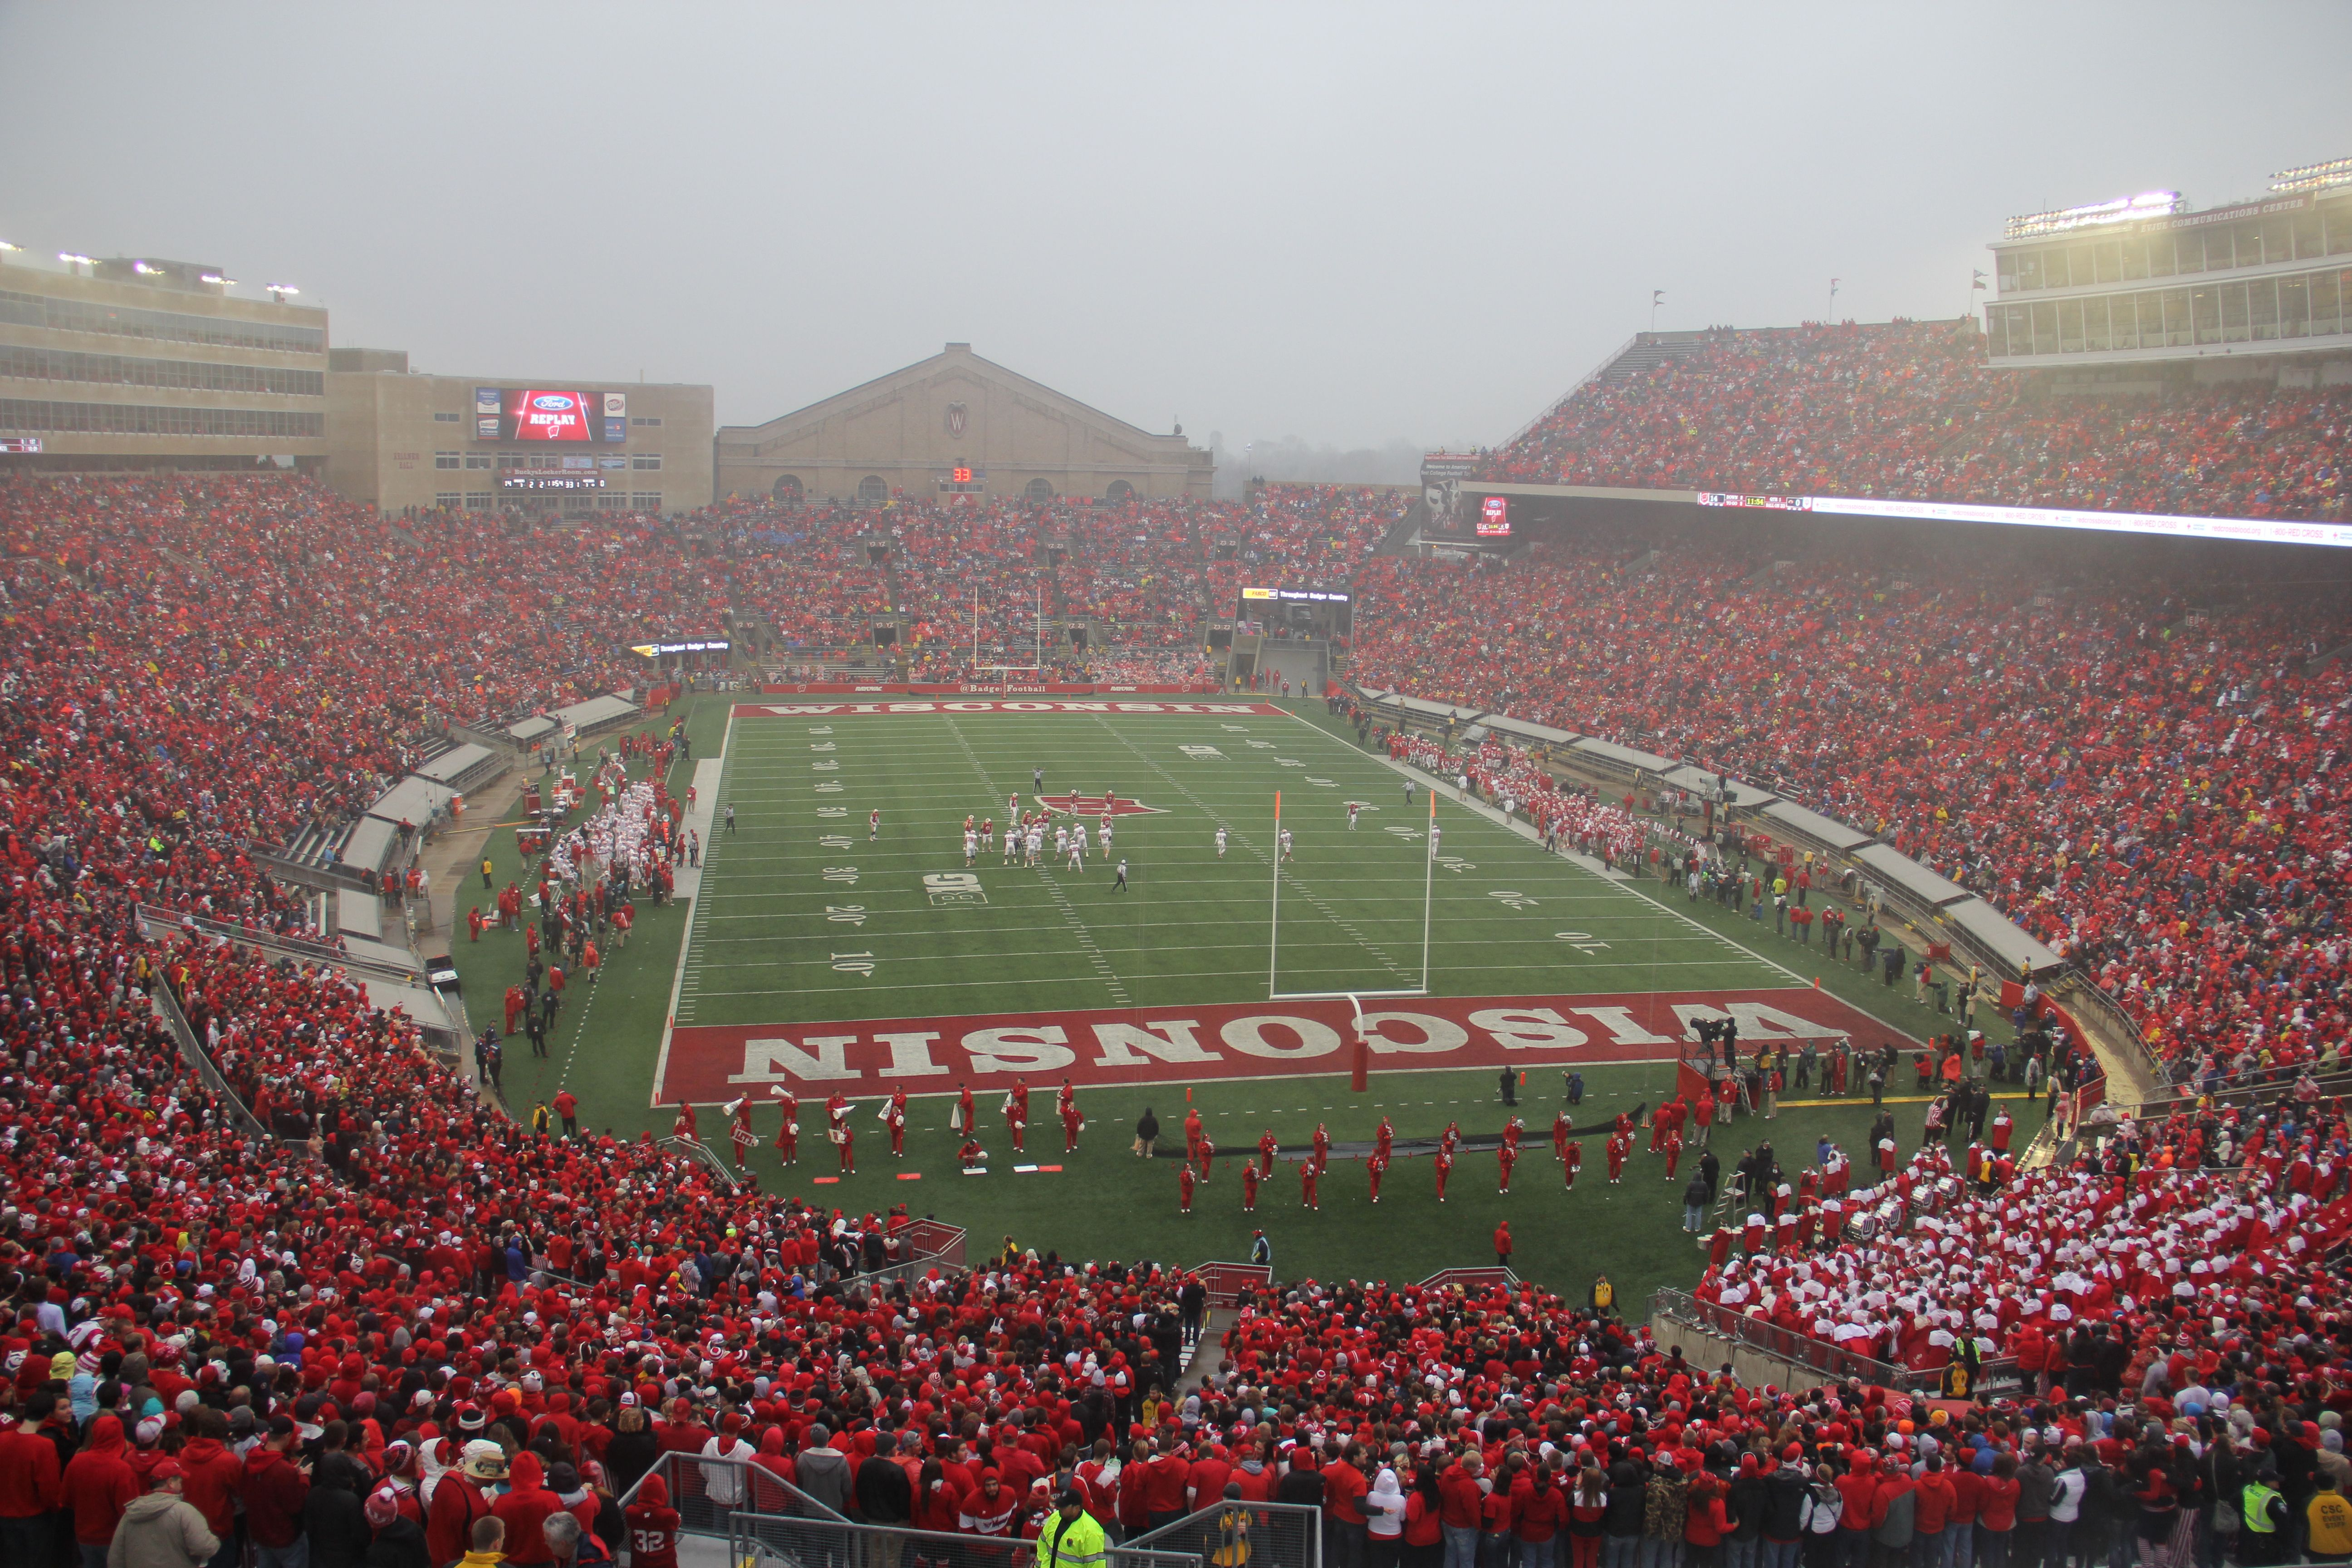 Rainy day at Camp Randall Stadium for the Indiana game